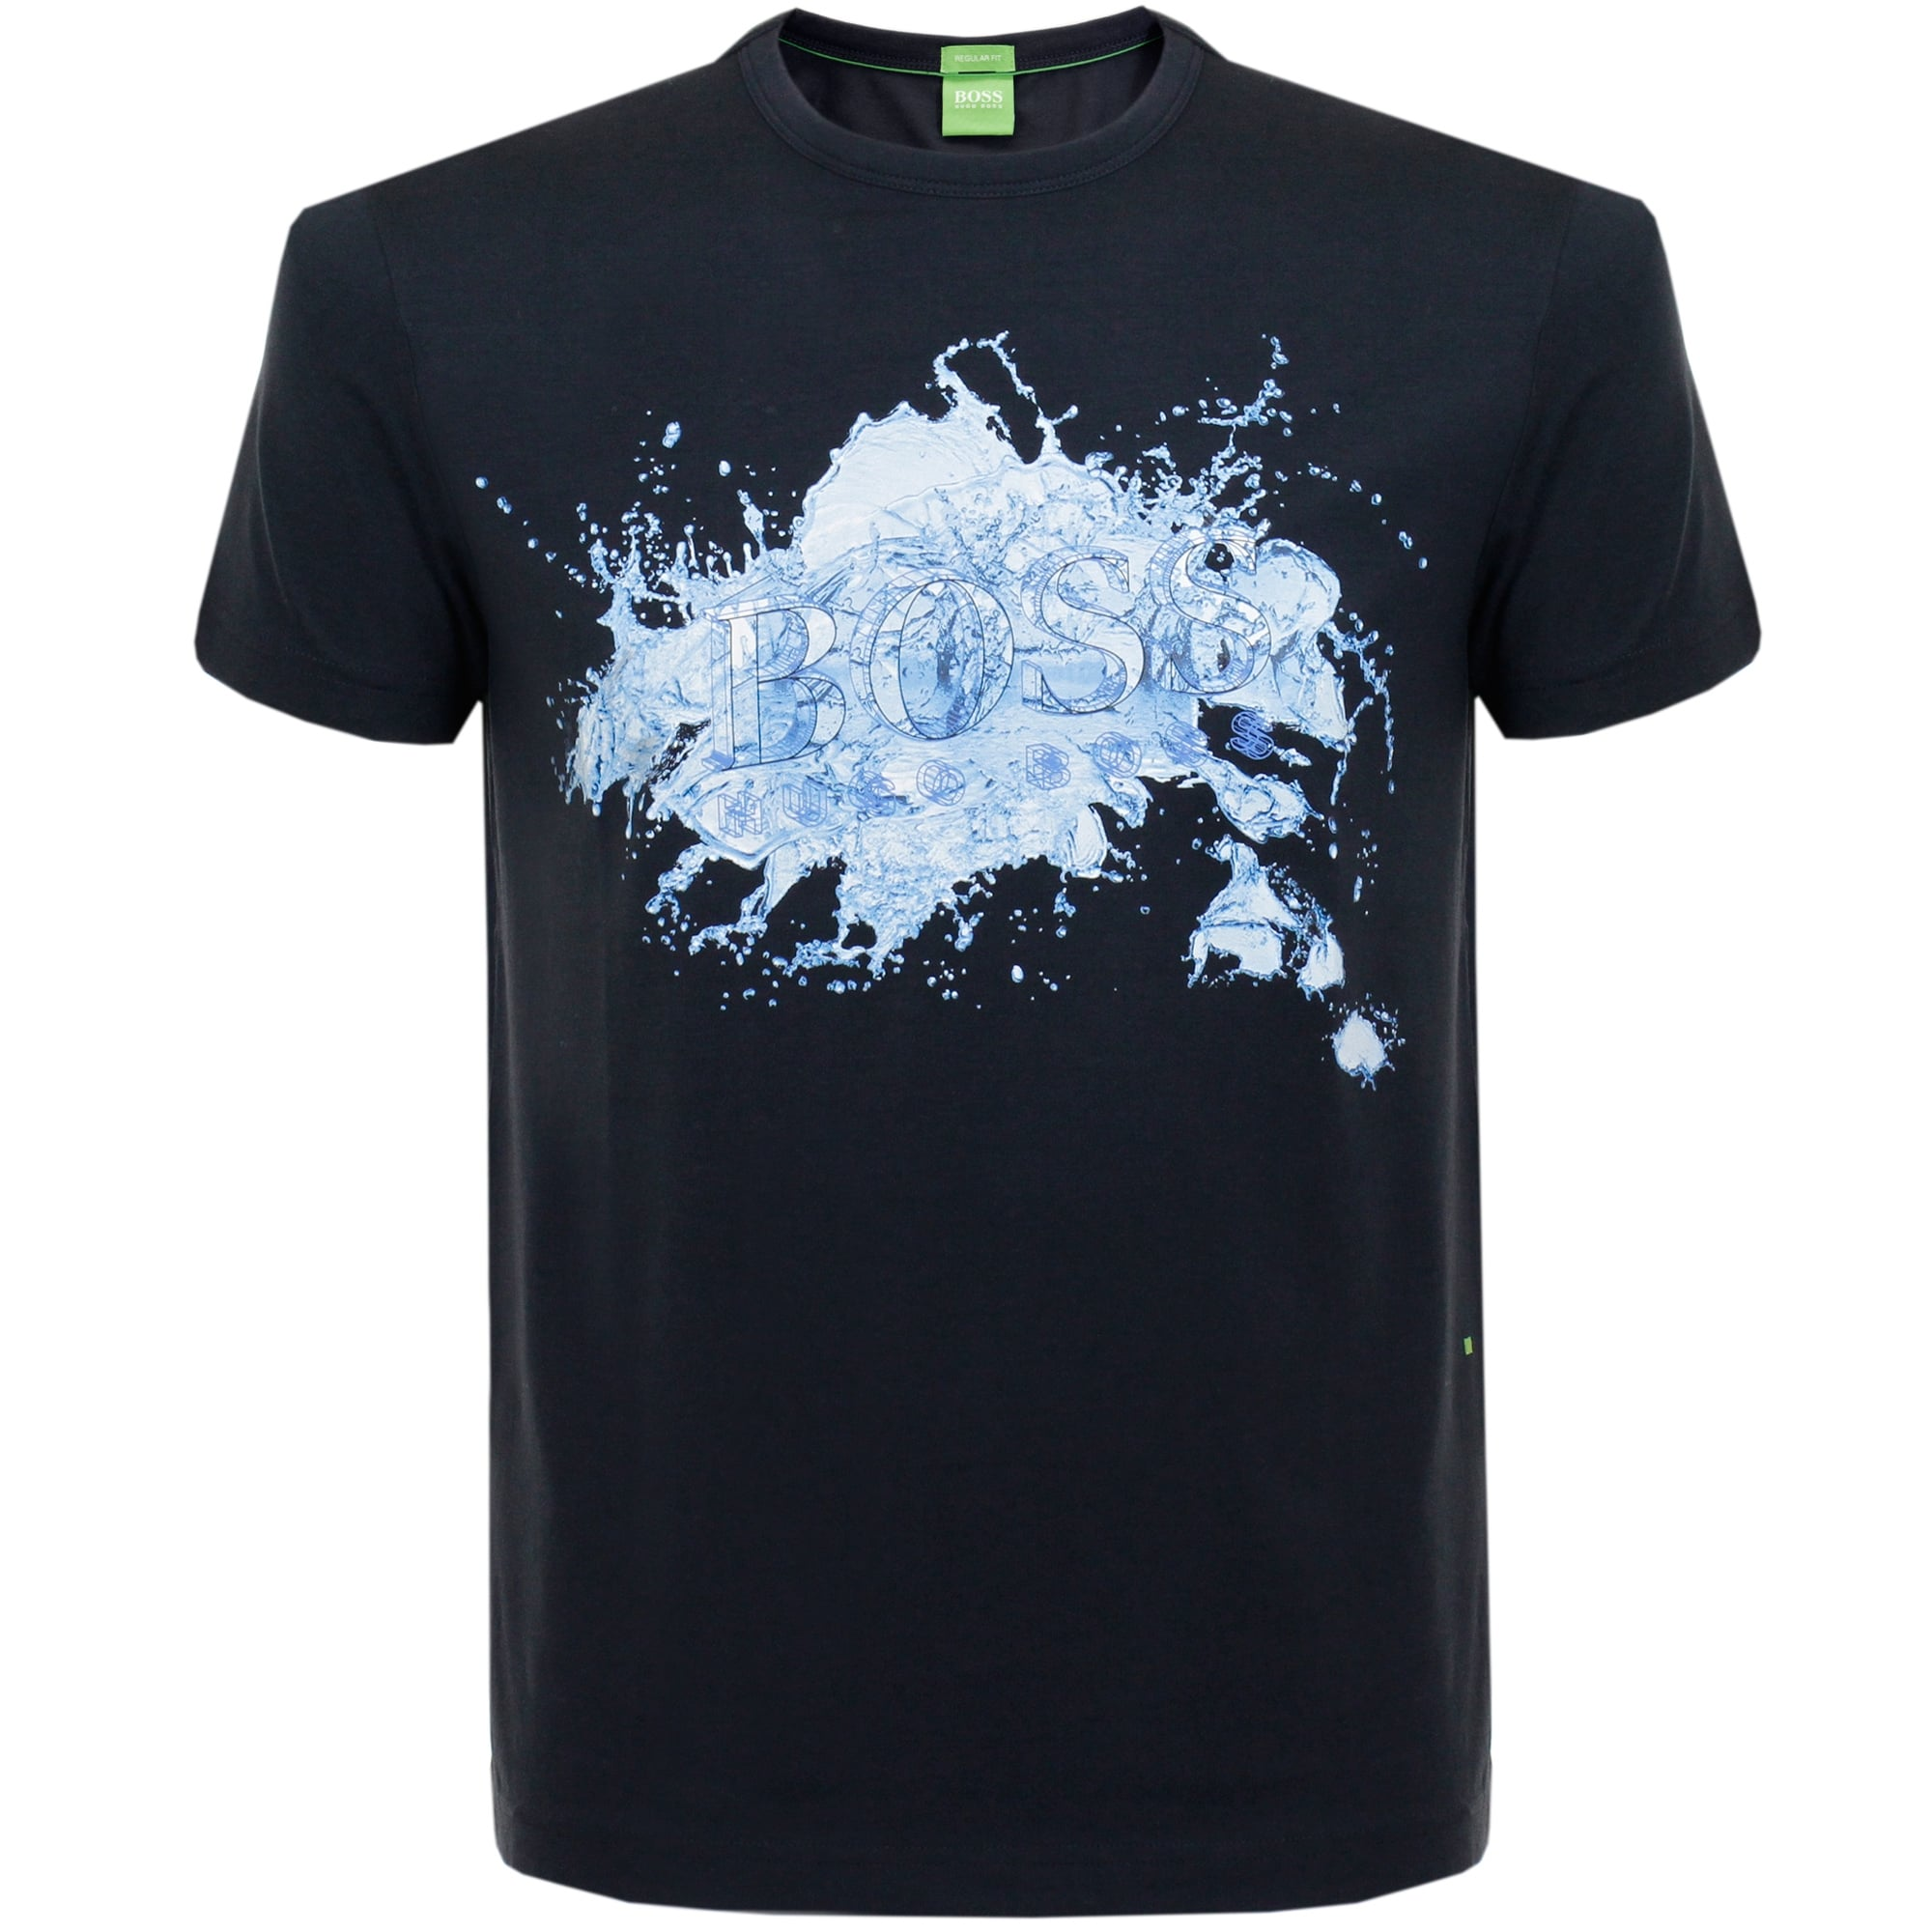 Hugo boss store online tee 8 navy t shirt for Hugo boss t shirts online